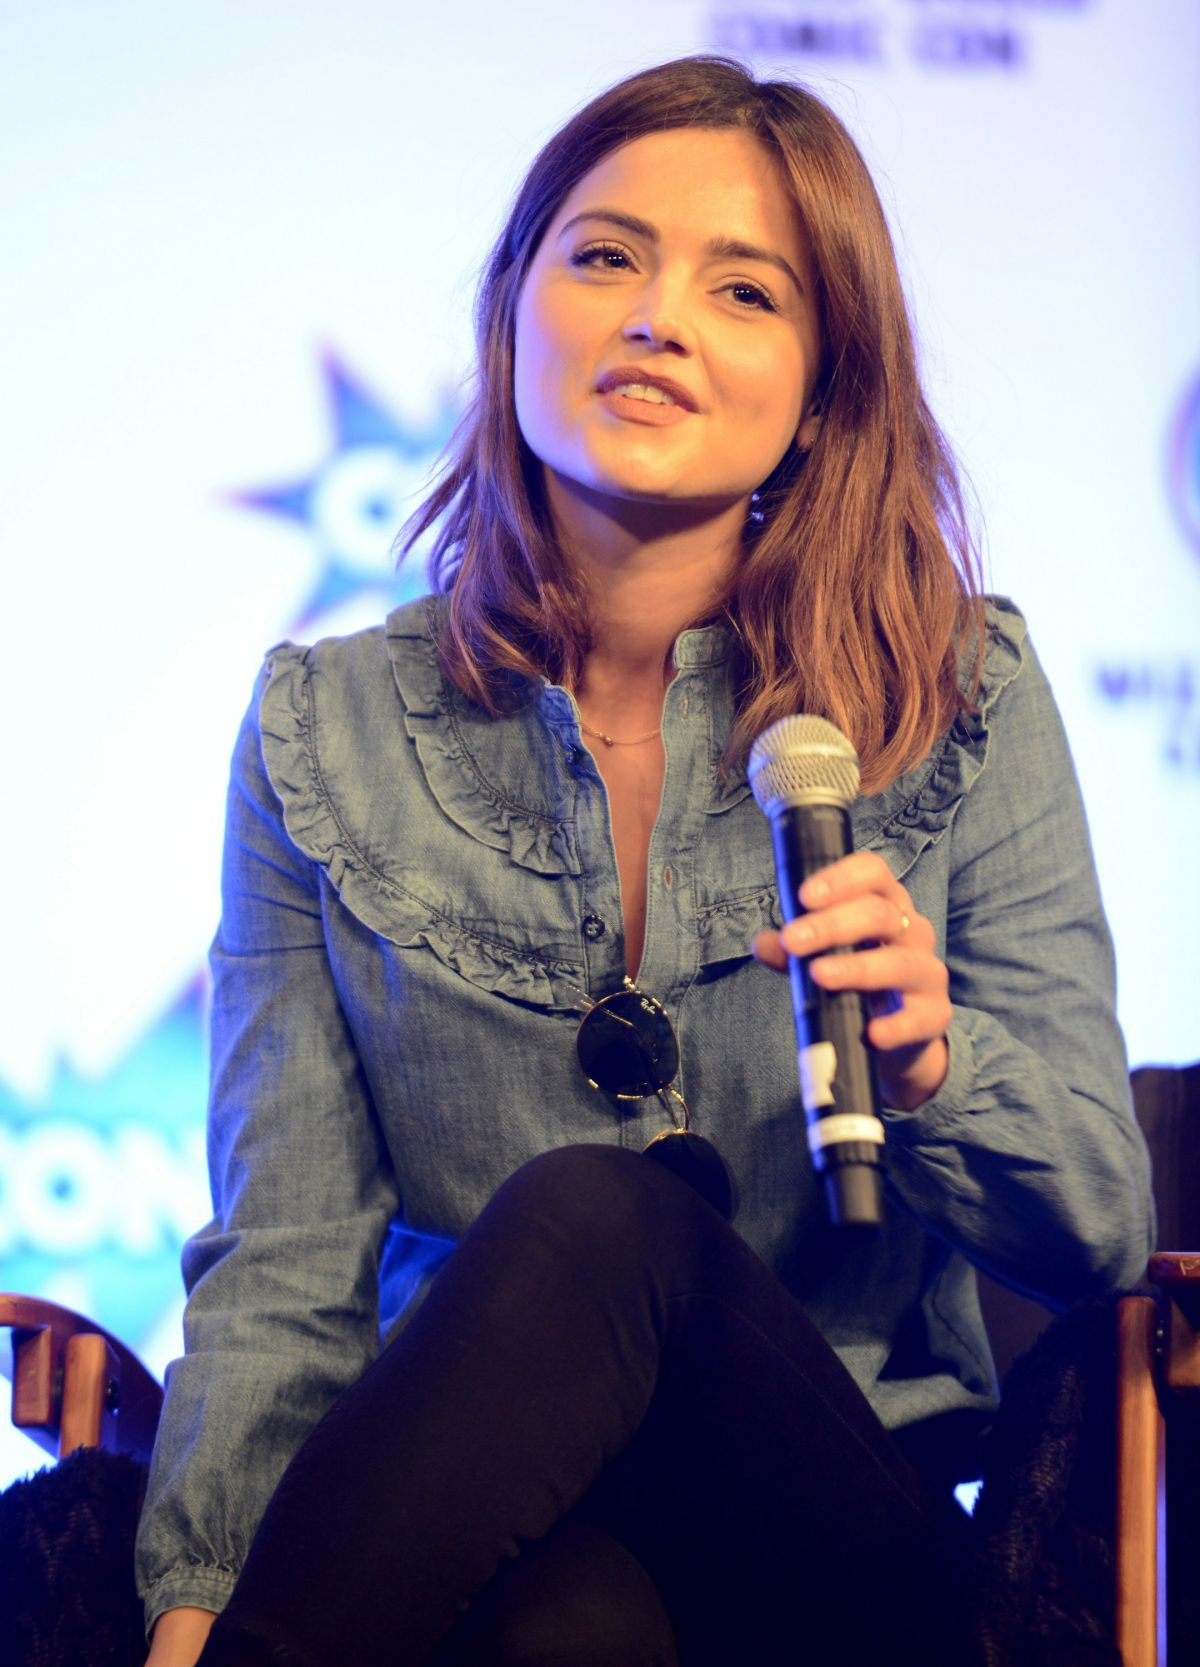 JENNA LOUIS COLEMAN at Wizard World Comic Con in New Orleans 01/09/2016